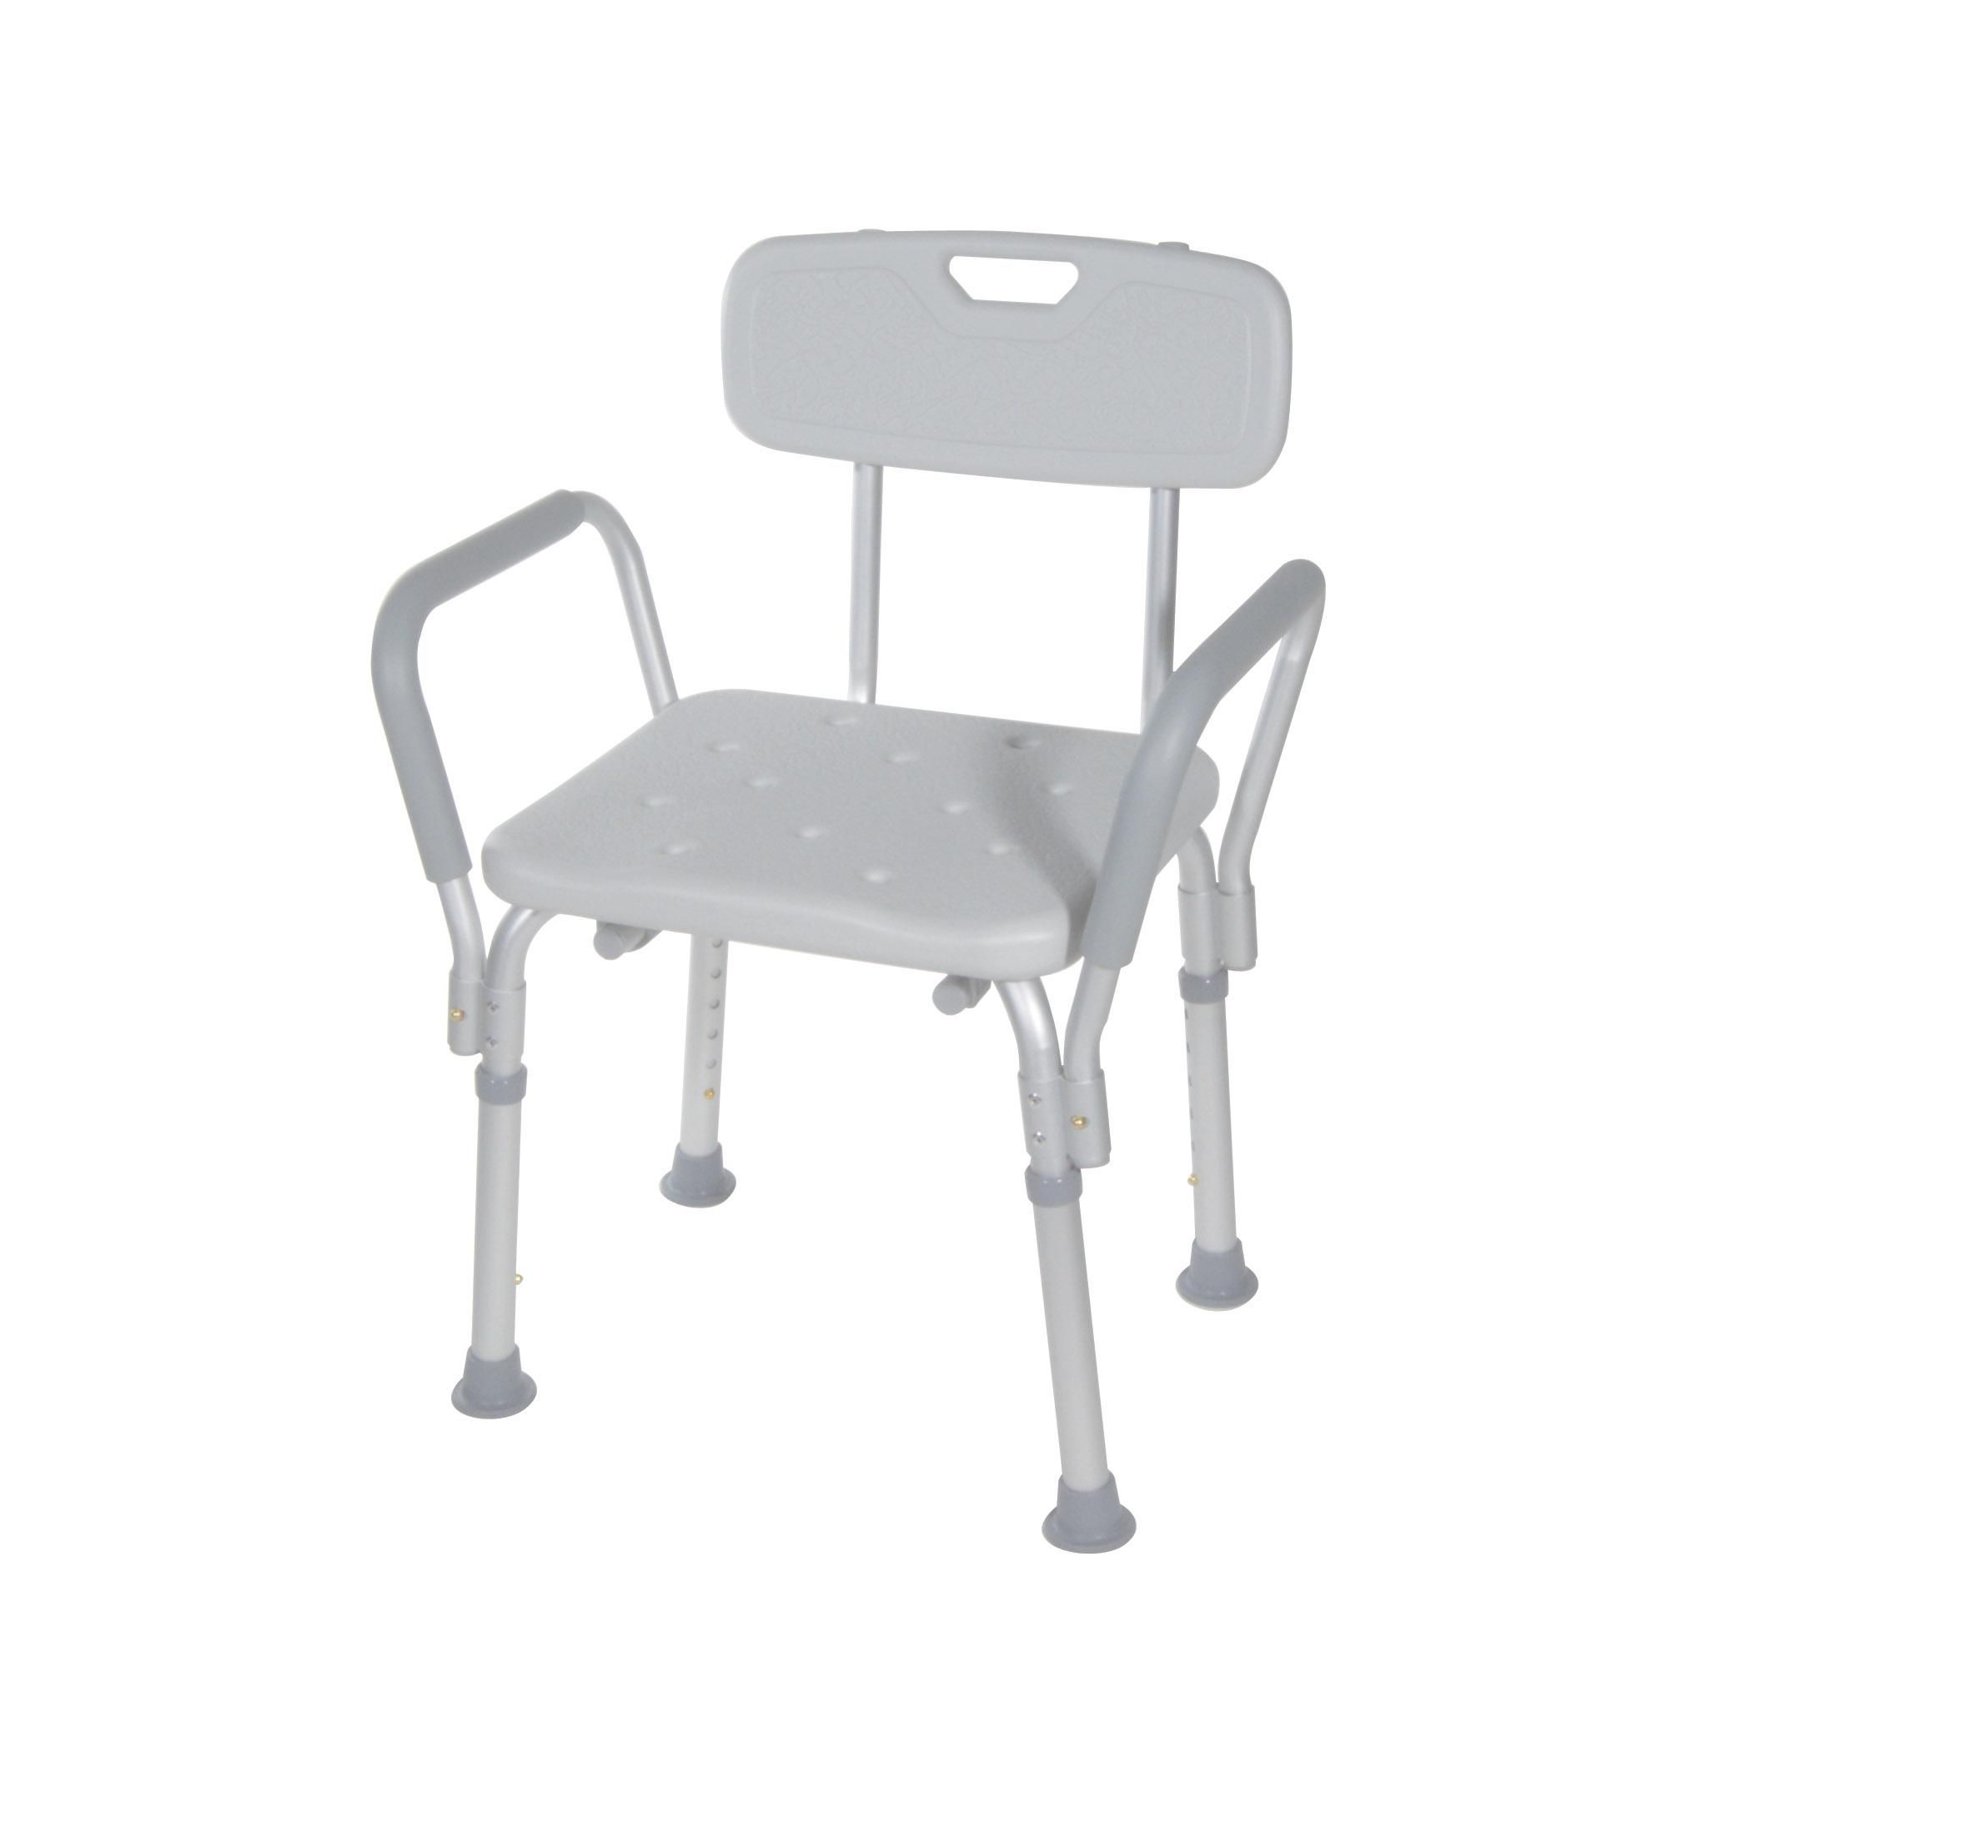 Best Shower Chair With Arms Design And Ideas Badewanne Mit Dusche Dusche Stühle